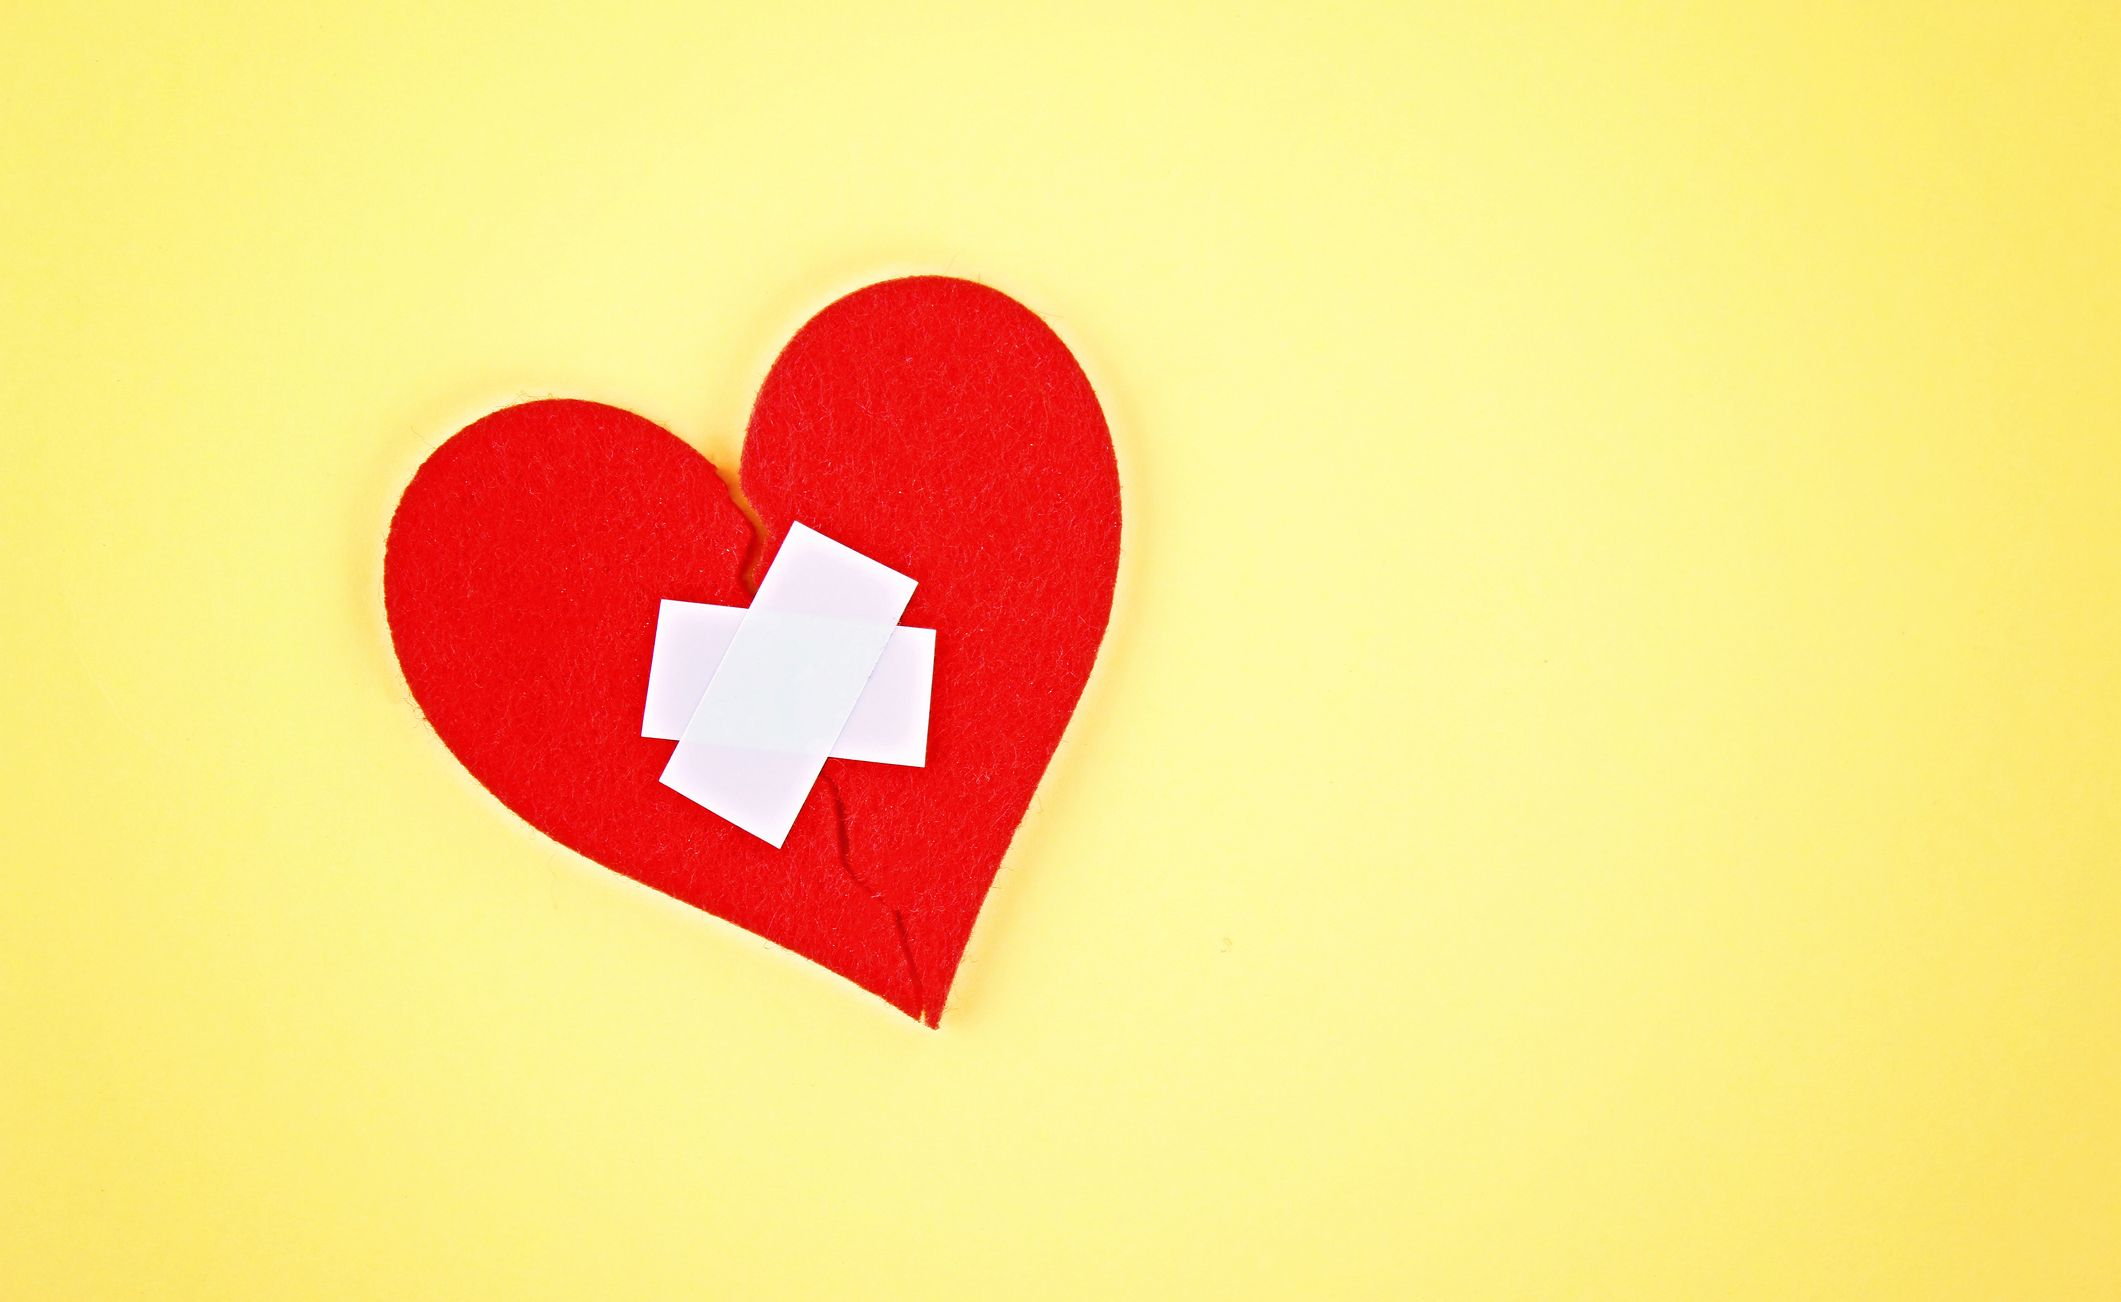 A red felt heart broken into two halves, glued together by a plaster on a yellow background.